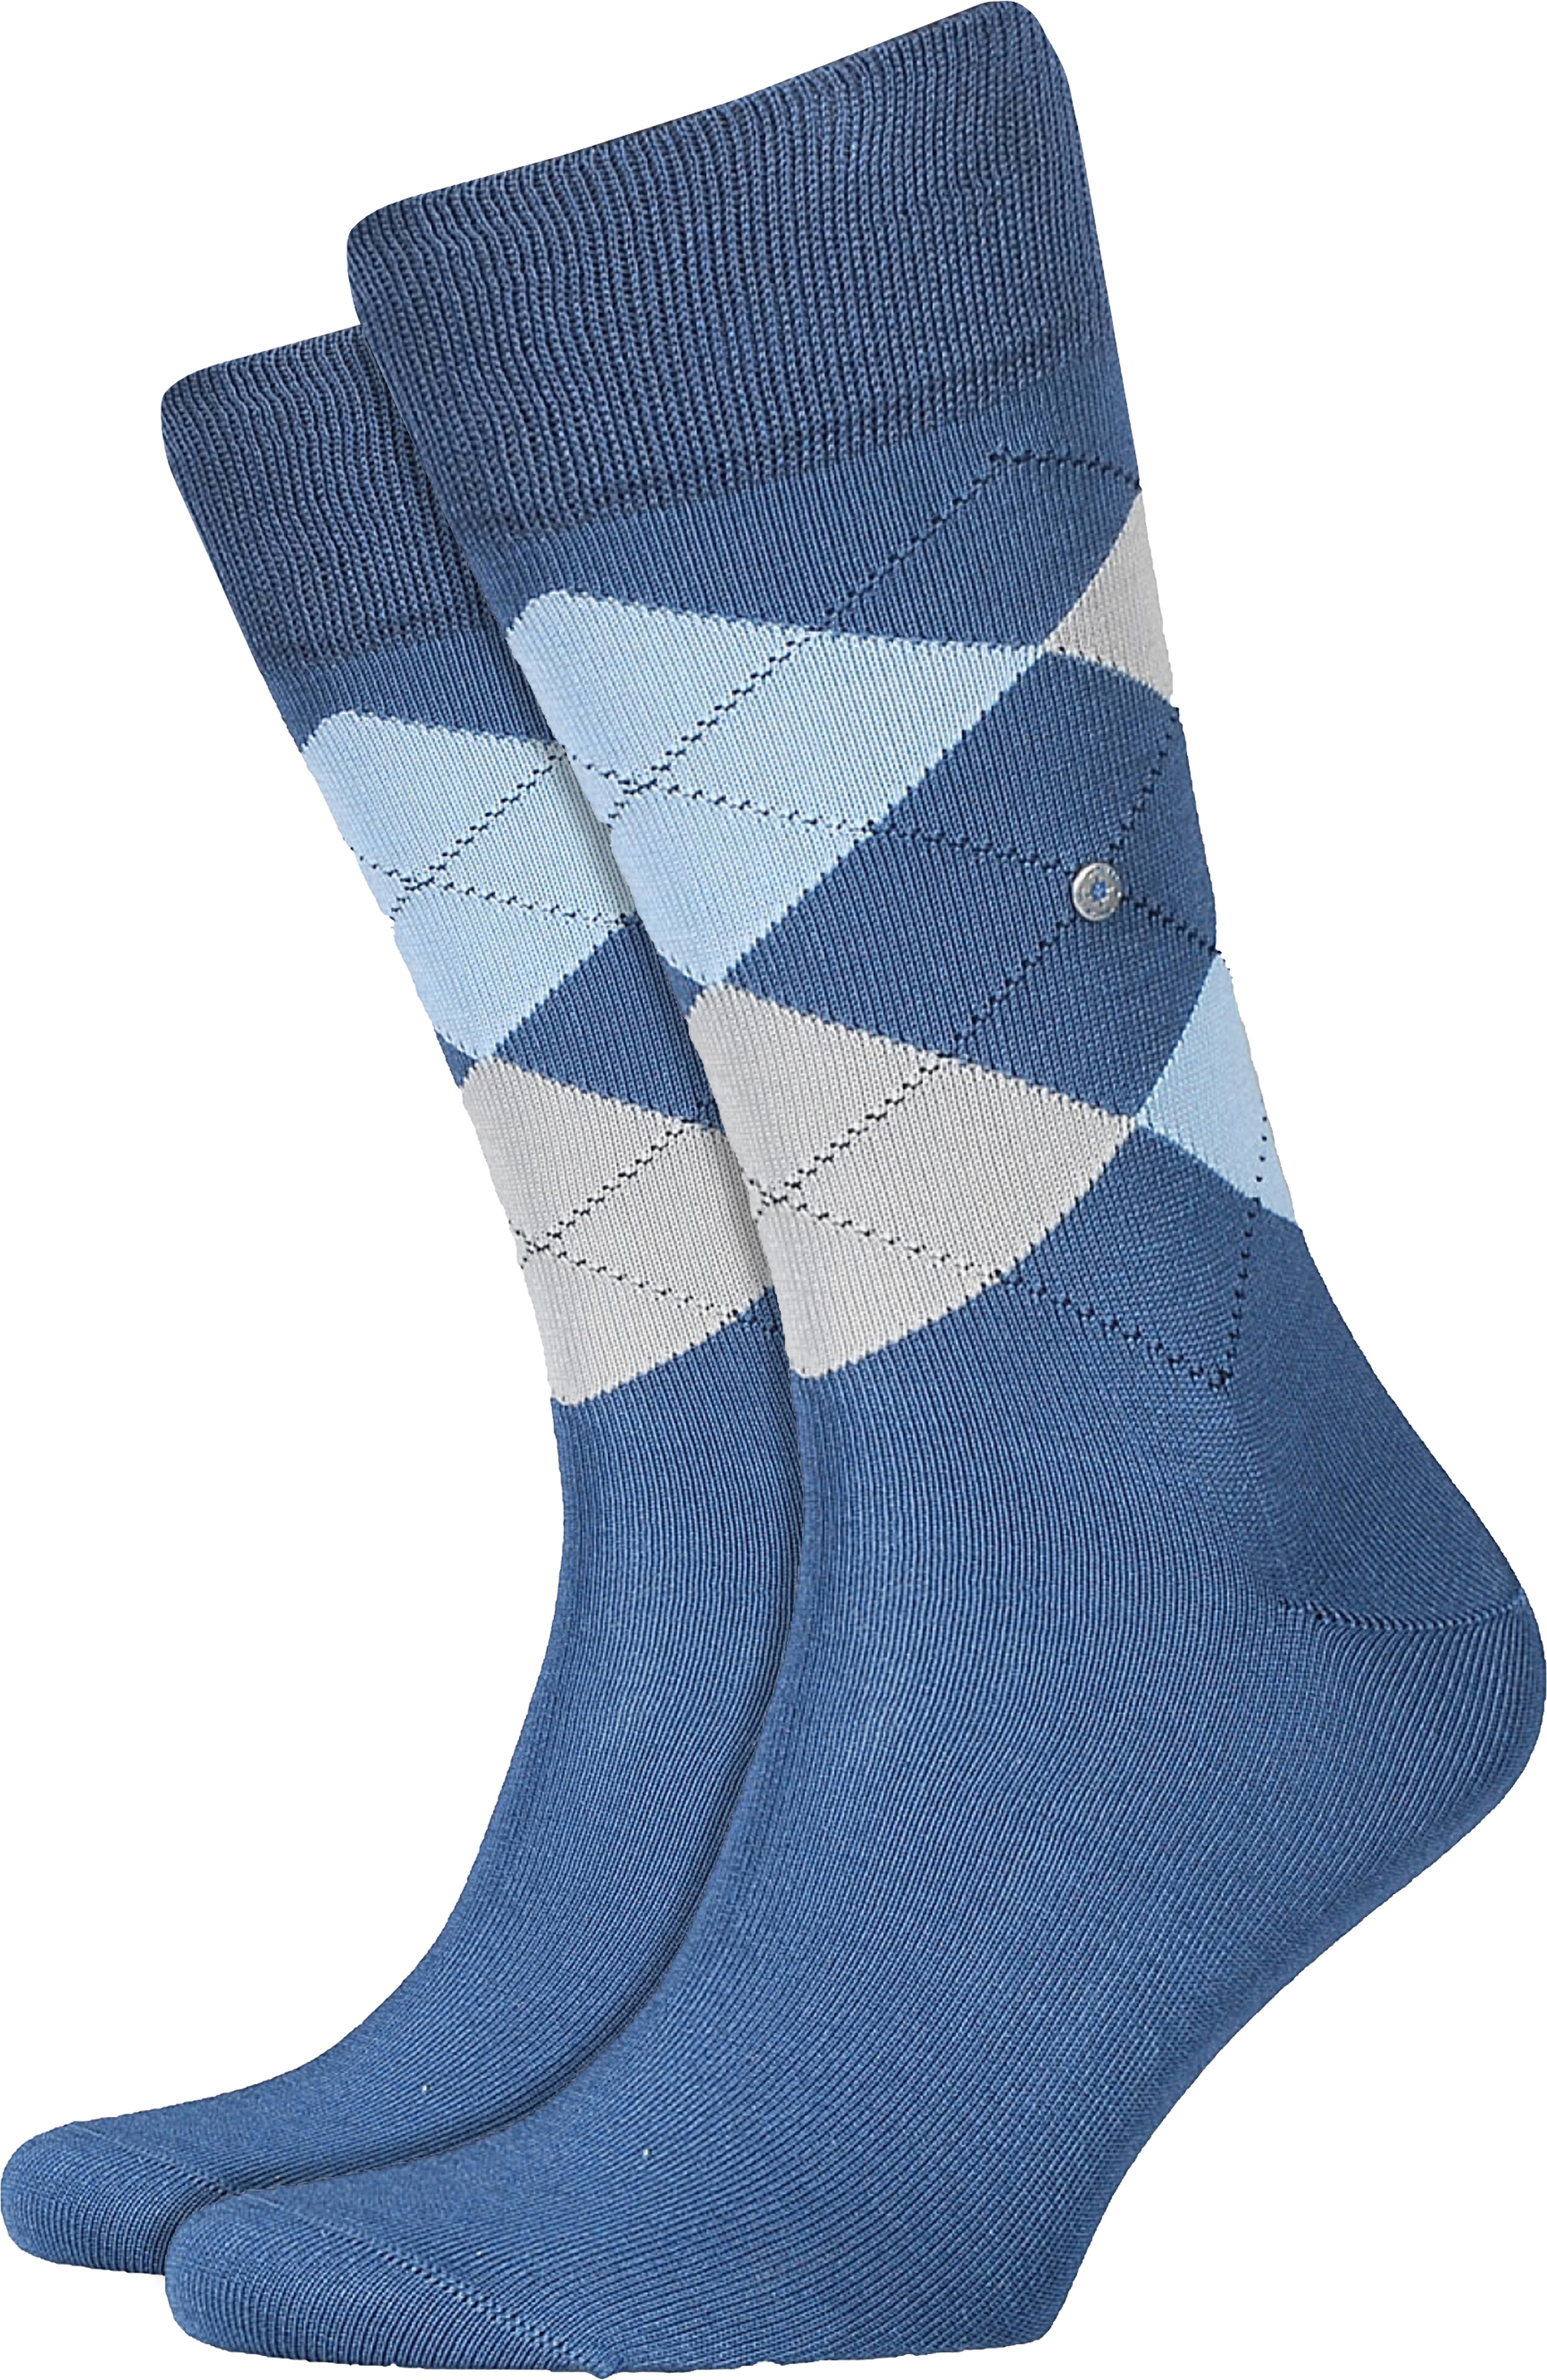 Burlington Socks Checkered Cotton 6220